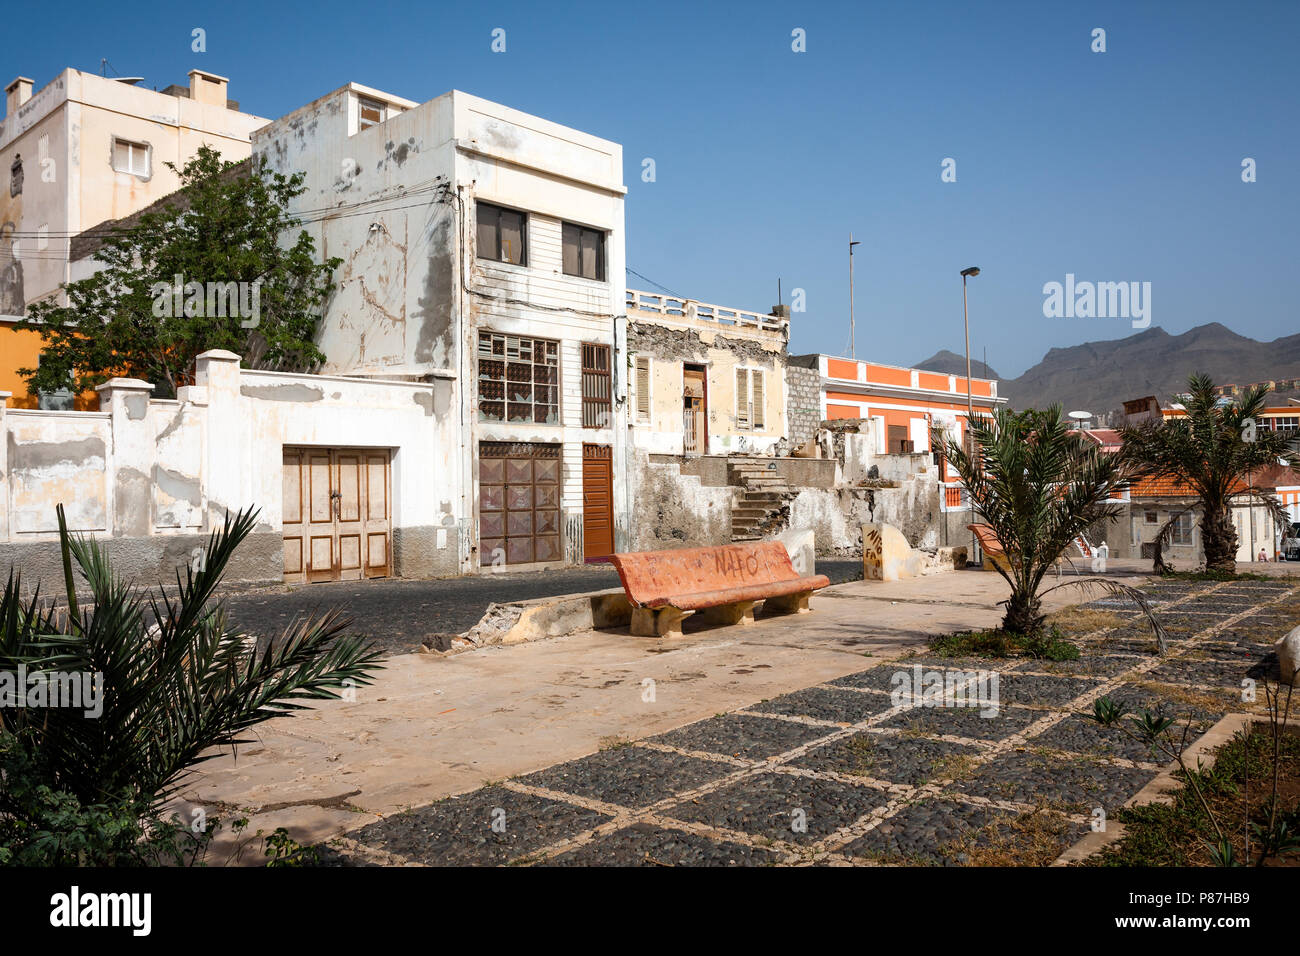 MINDELO, CAPE VERDE - DECEMBER 07, 2015: Abandoned buildings, scenic ruins in the middle of Mindelo City Stock Photo